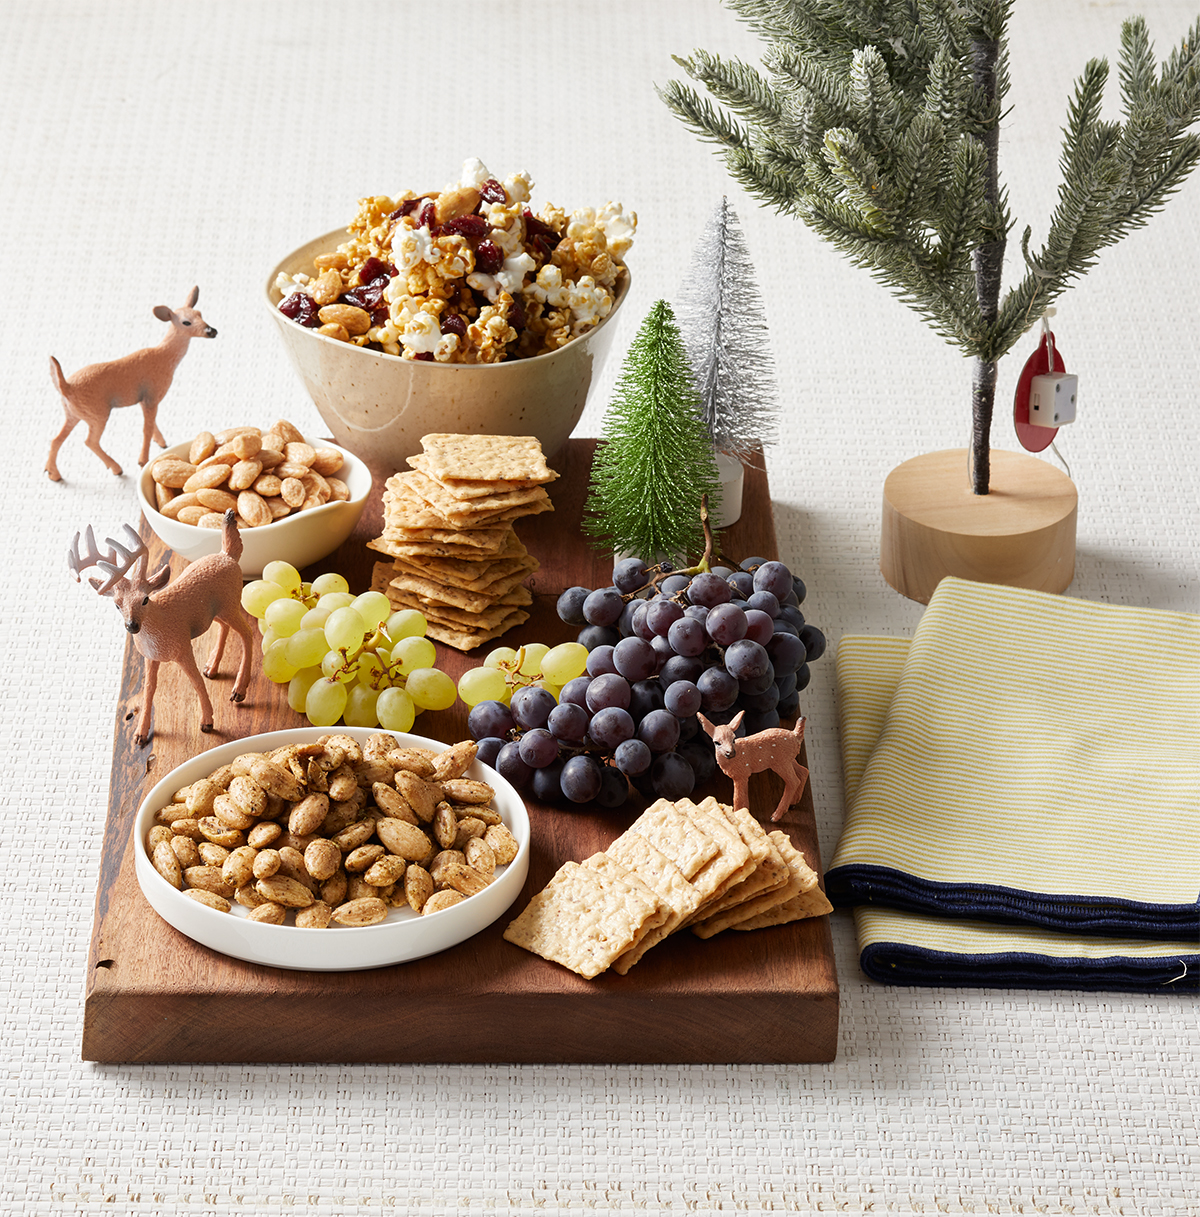 wooden board with grapes crackers snack mix and deer figures and trees